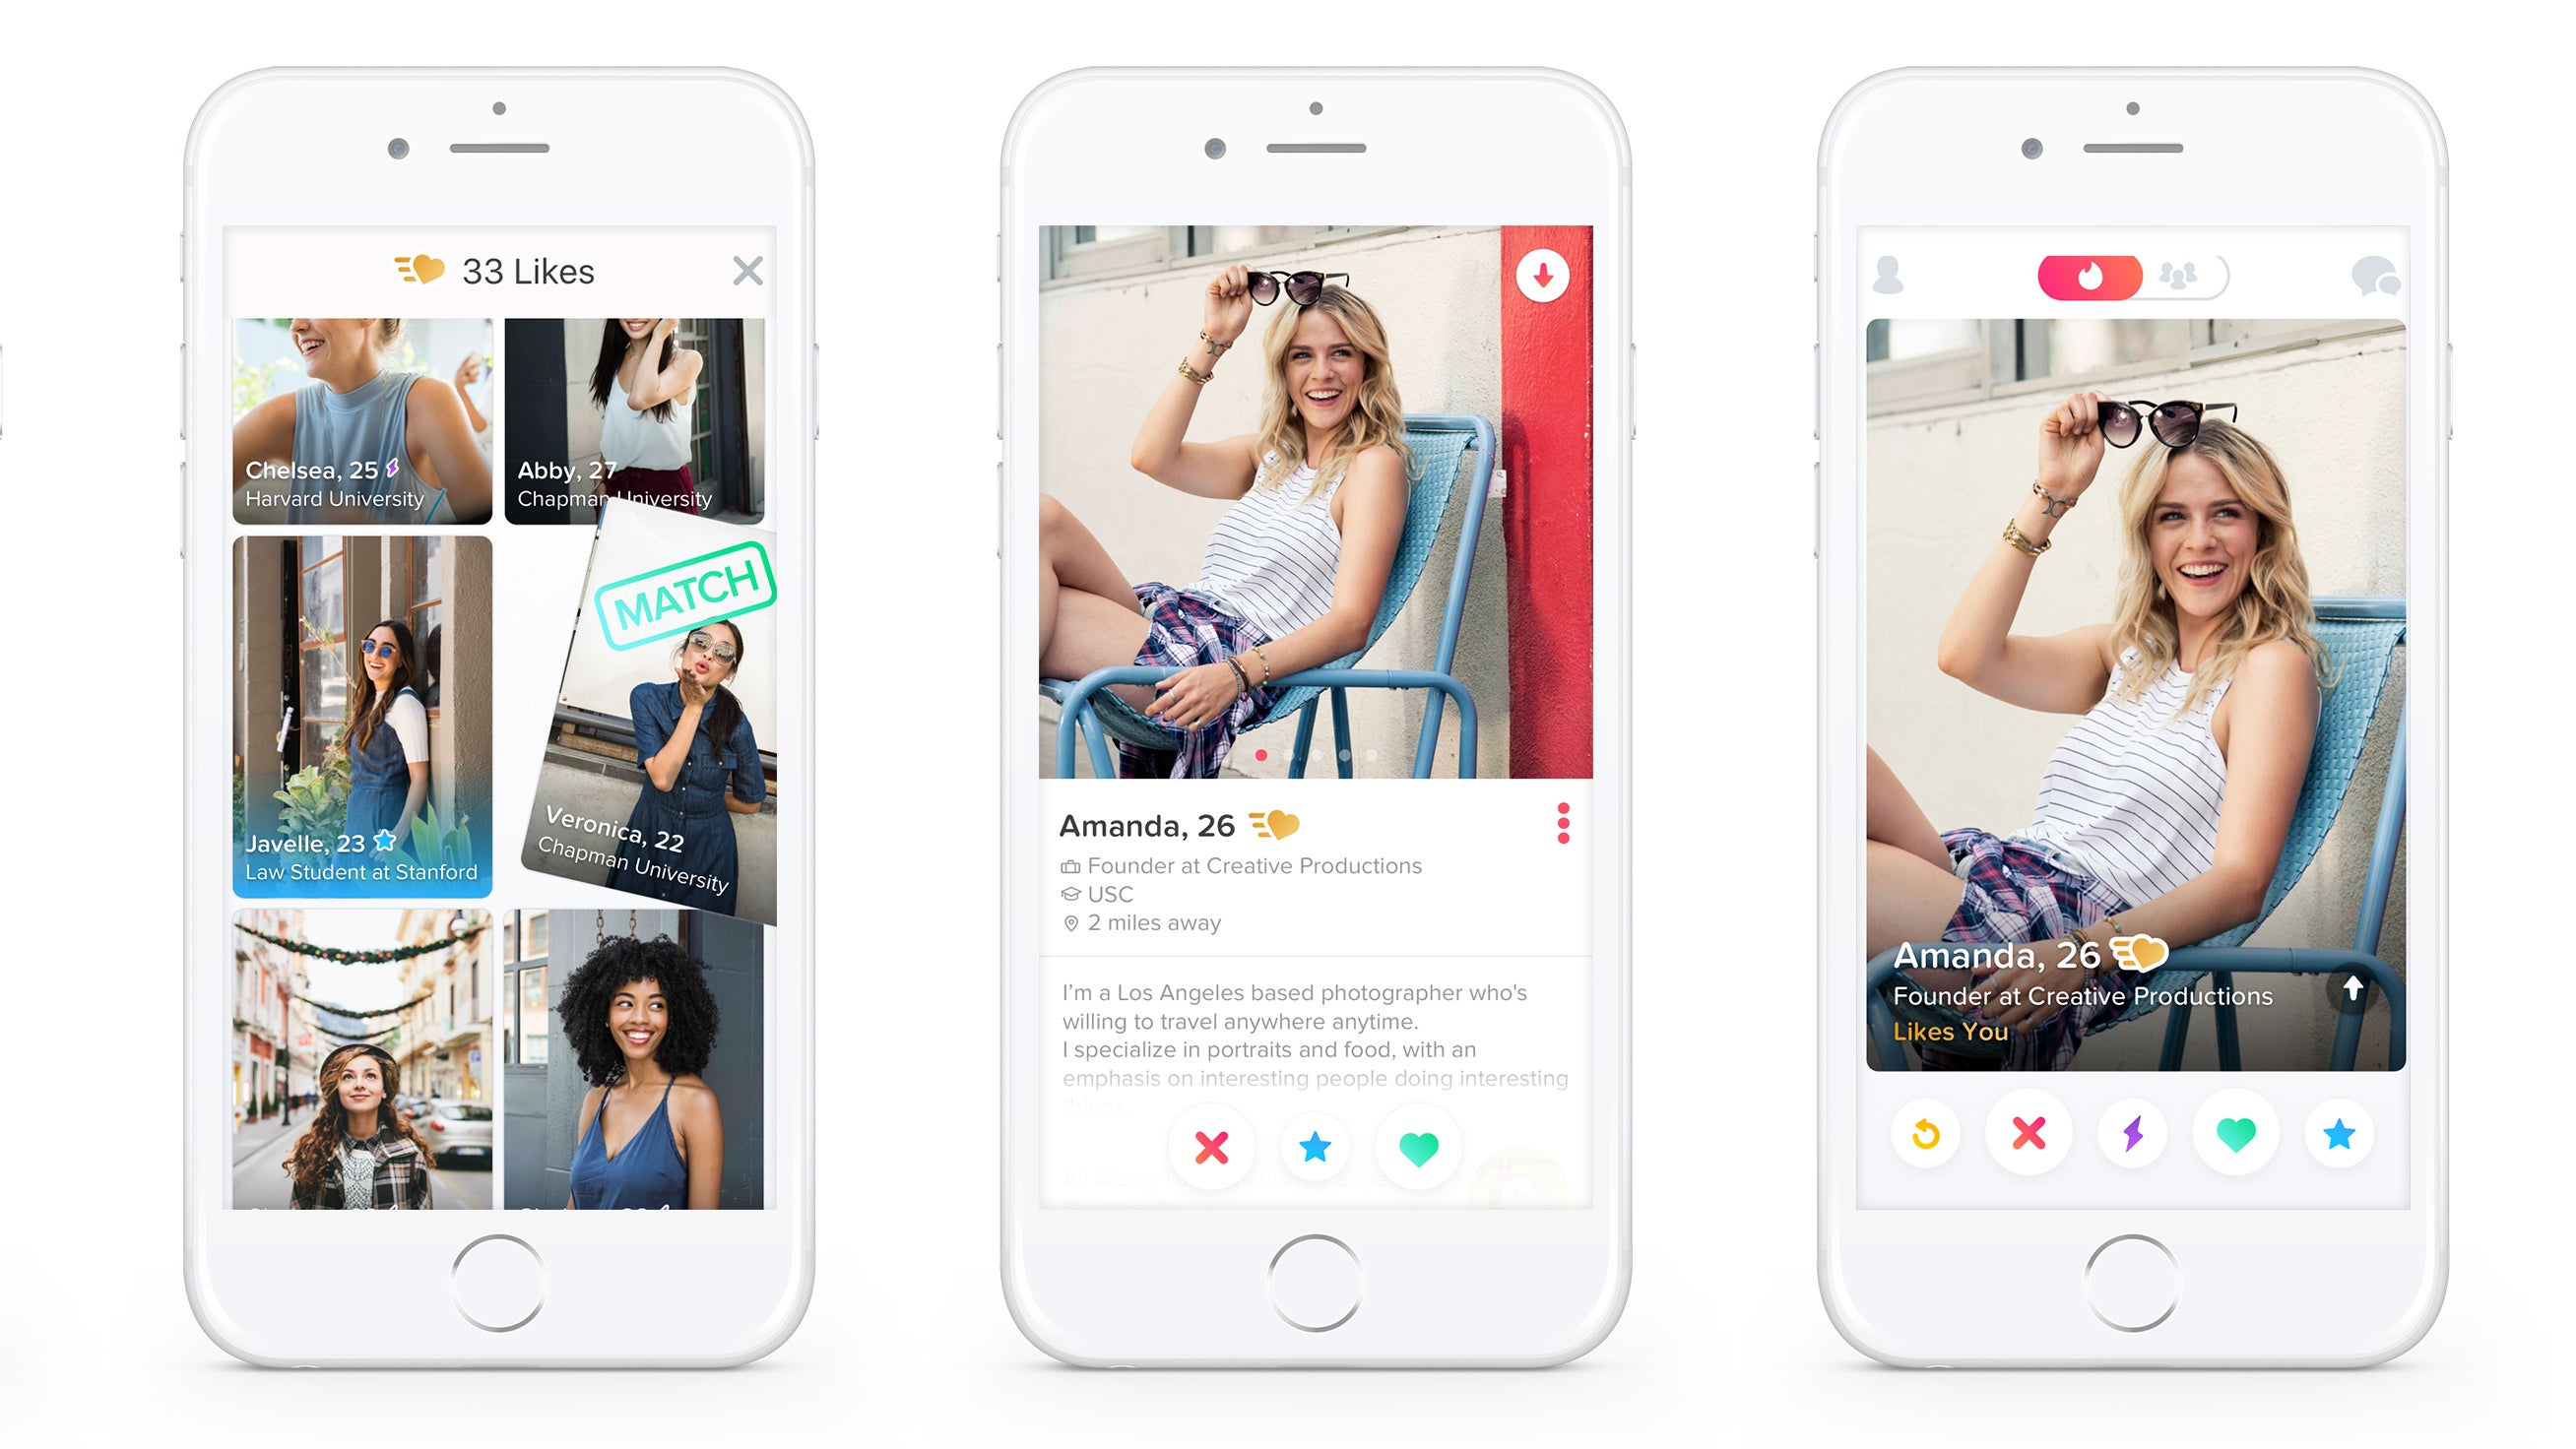 You Can Now Find Out Who Swiped Right on Your Tinder Profile